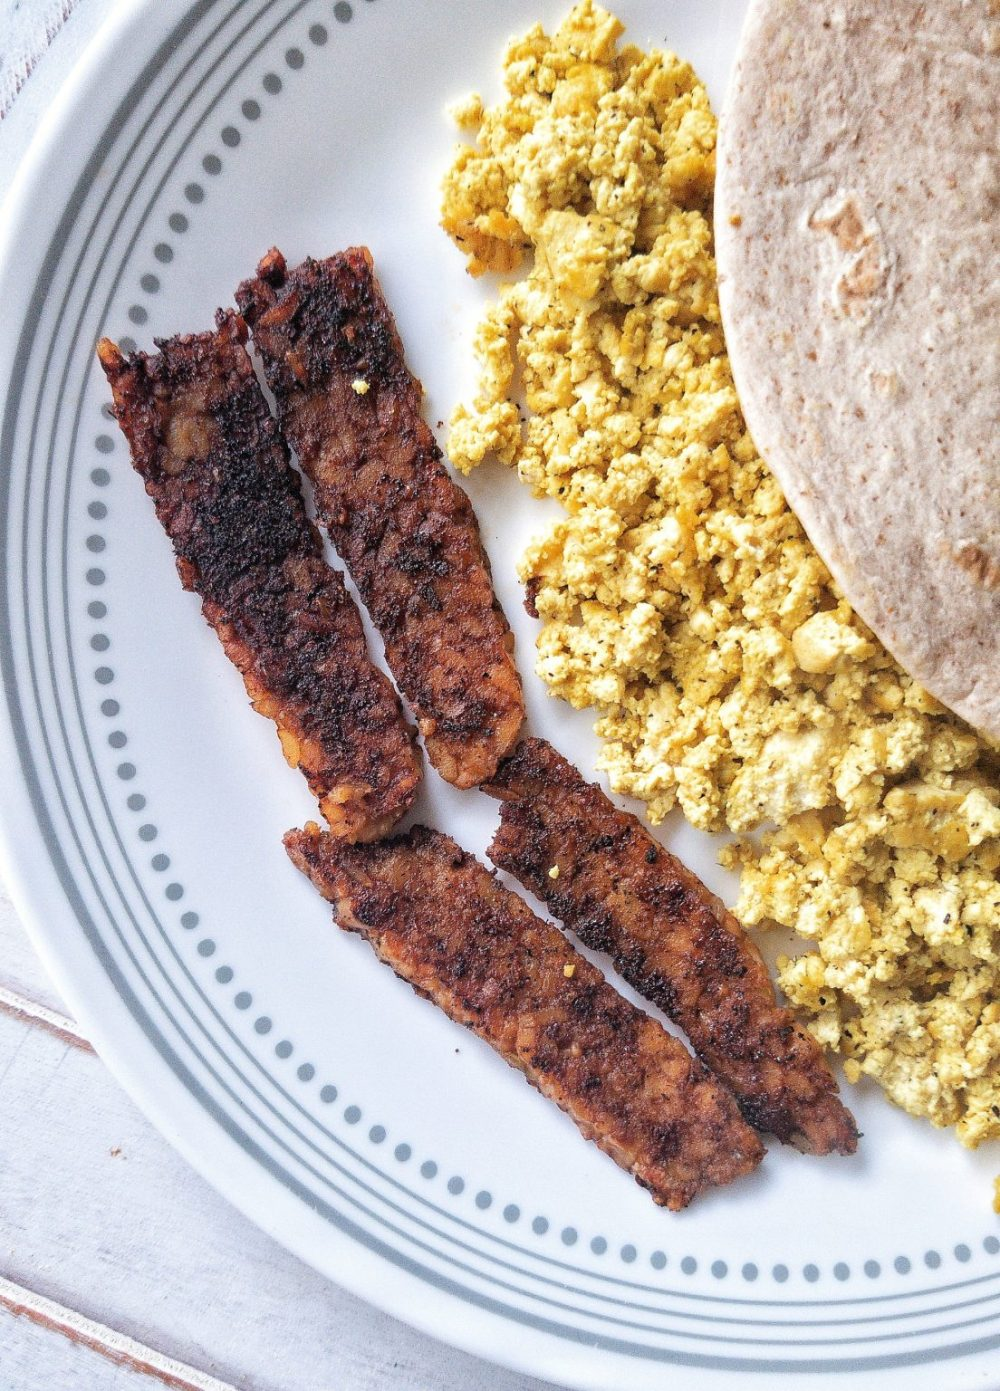 Smoky tempeh bacon with a side of tofu scramble